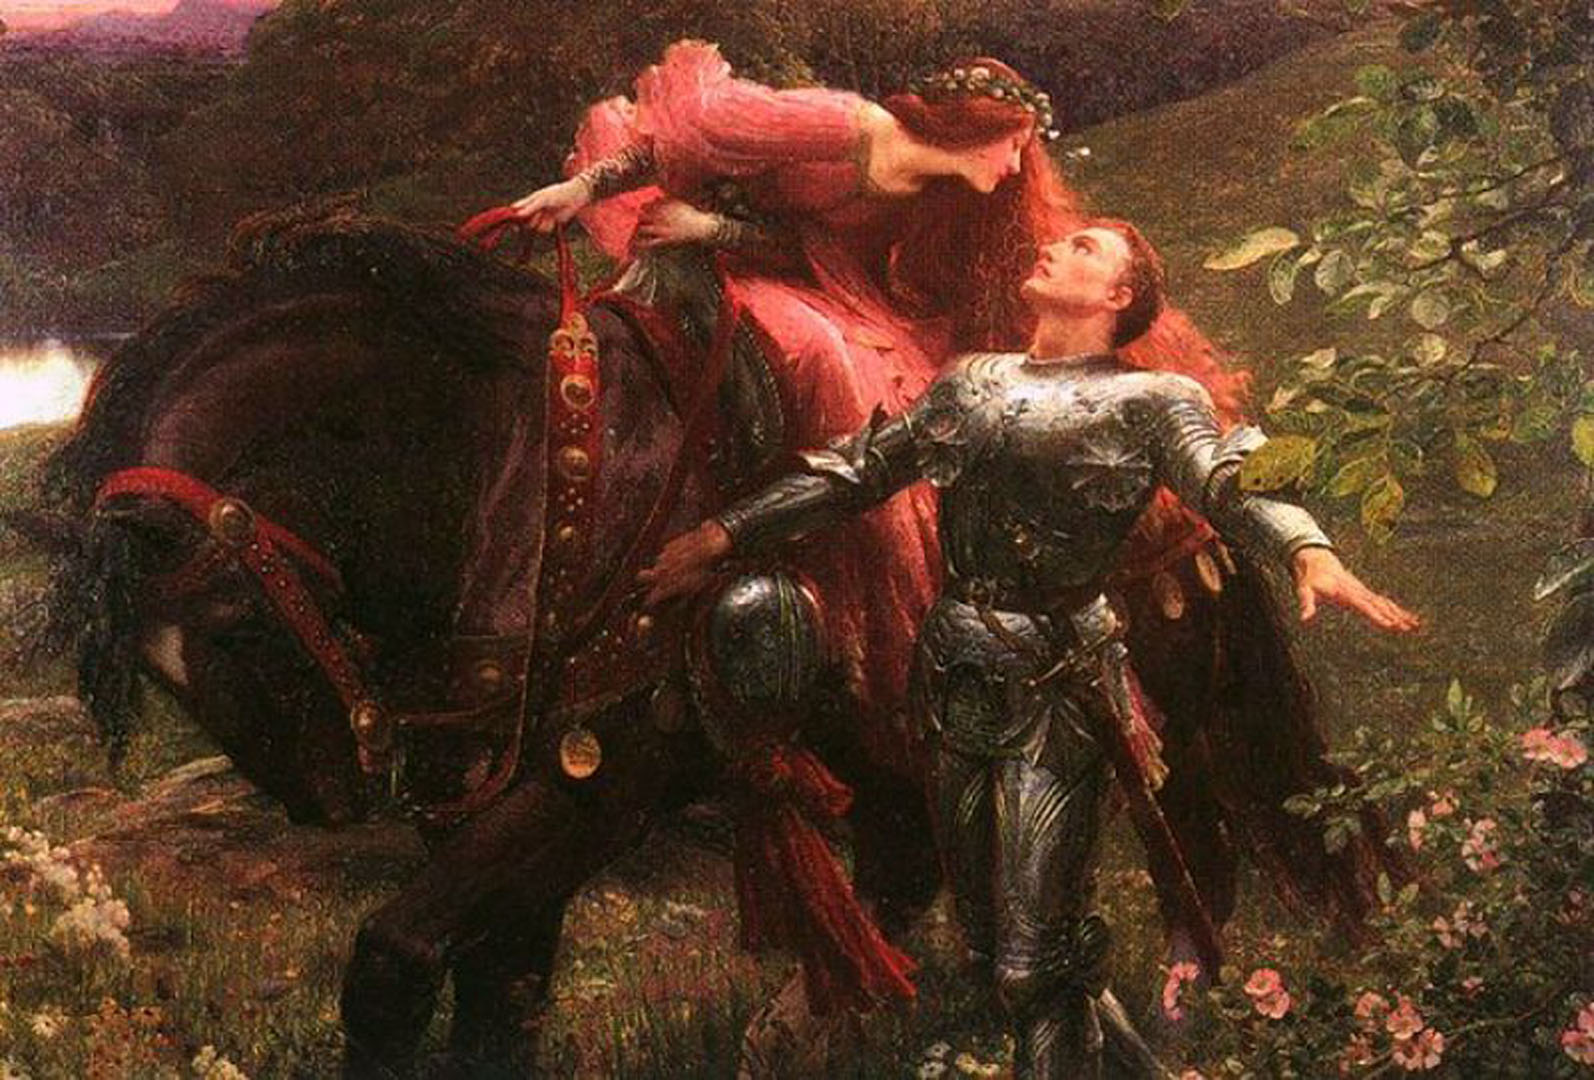 the chivalrous ideal and courtly love As its name implies, courtly love was practiced by noble lords and ladies its proper milieu was the royal palace or court ritualistic couples engaged in a courtly relationship conventionally exchanged gifts and tokens of their affair.